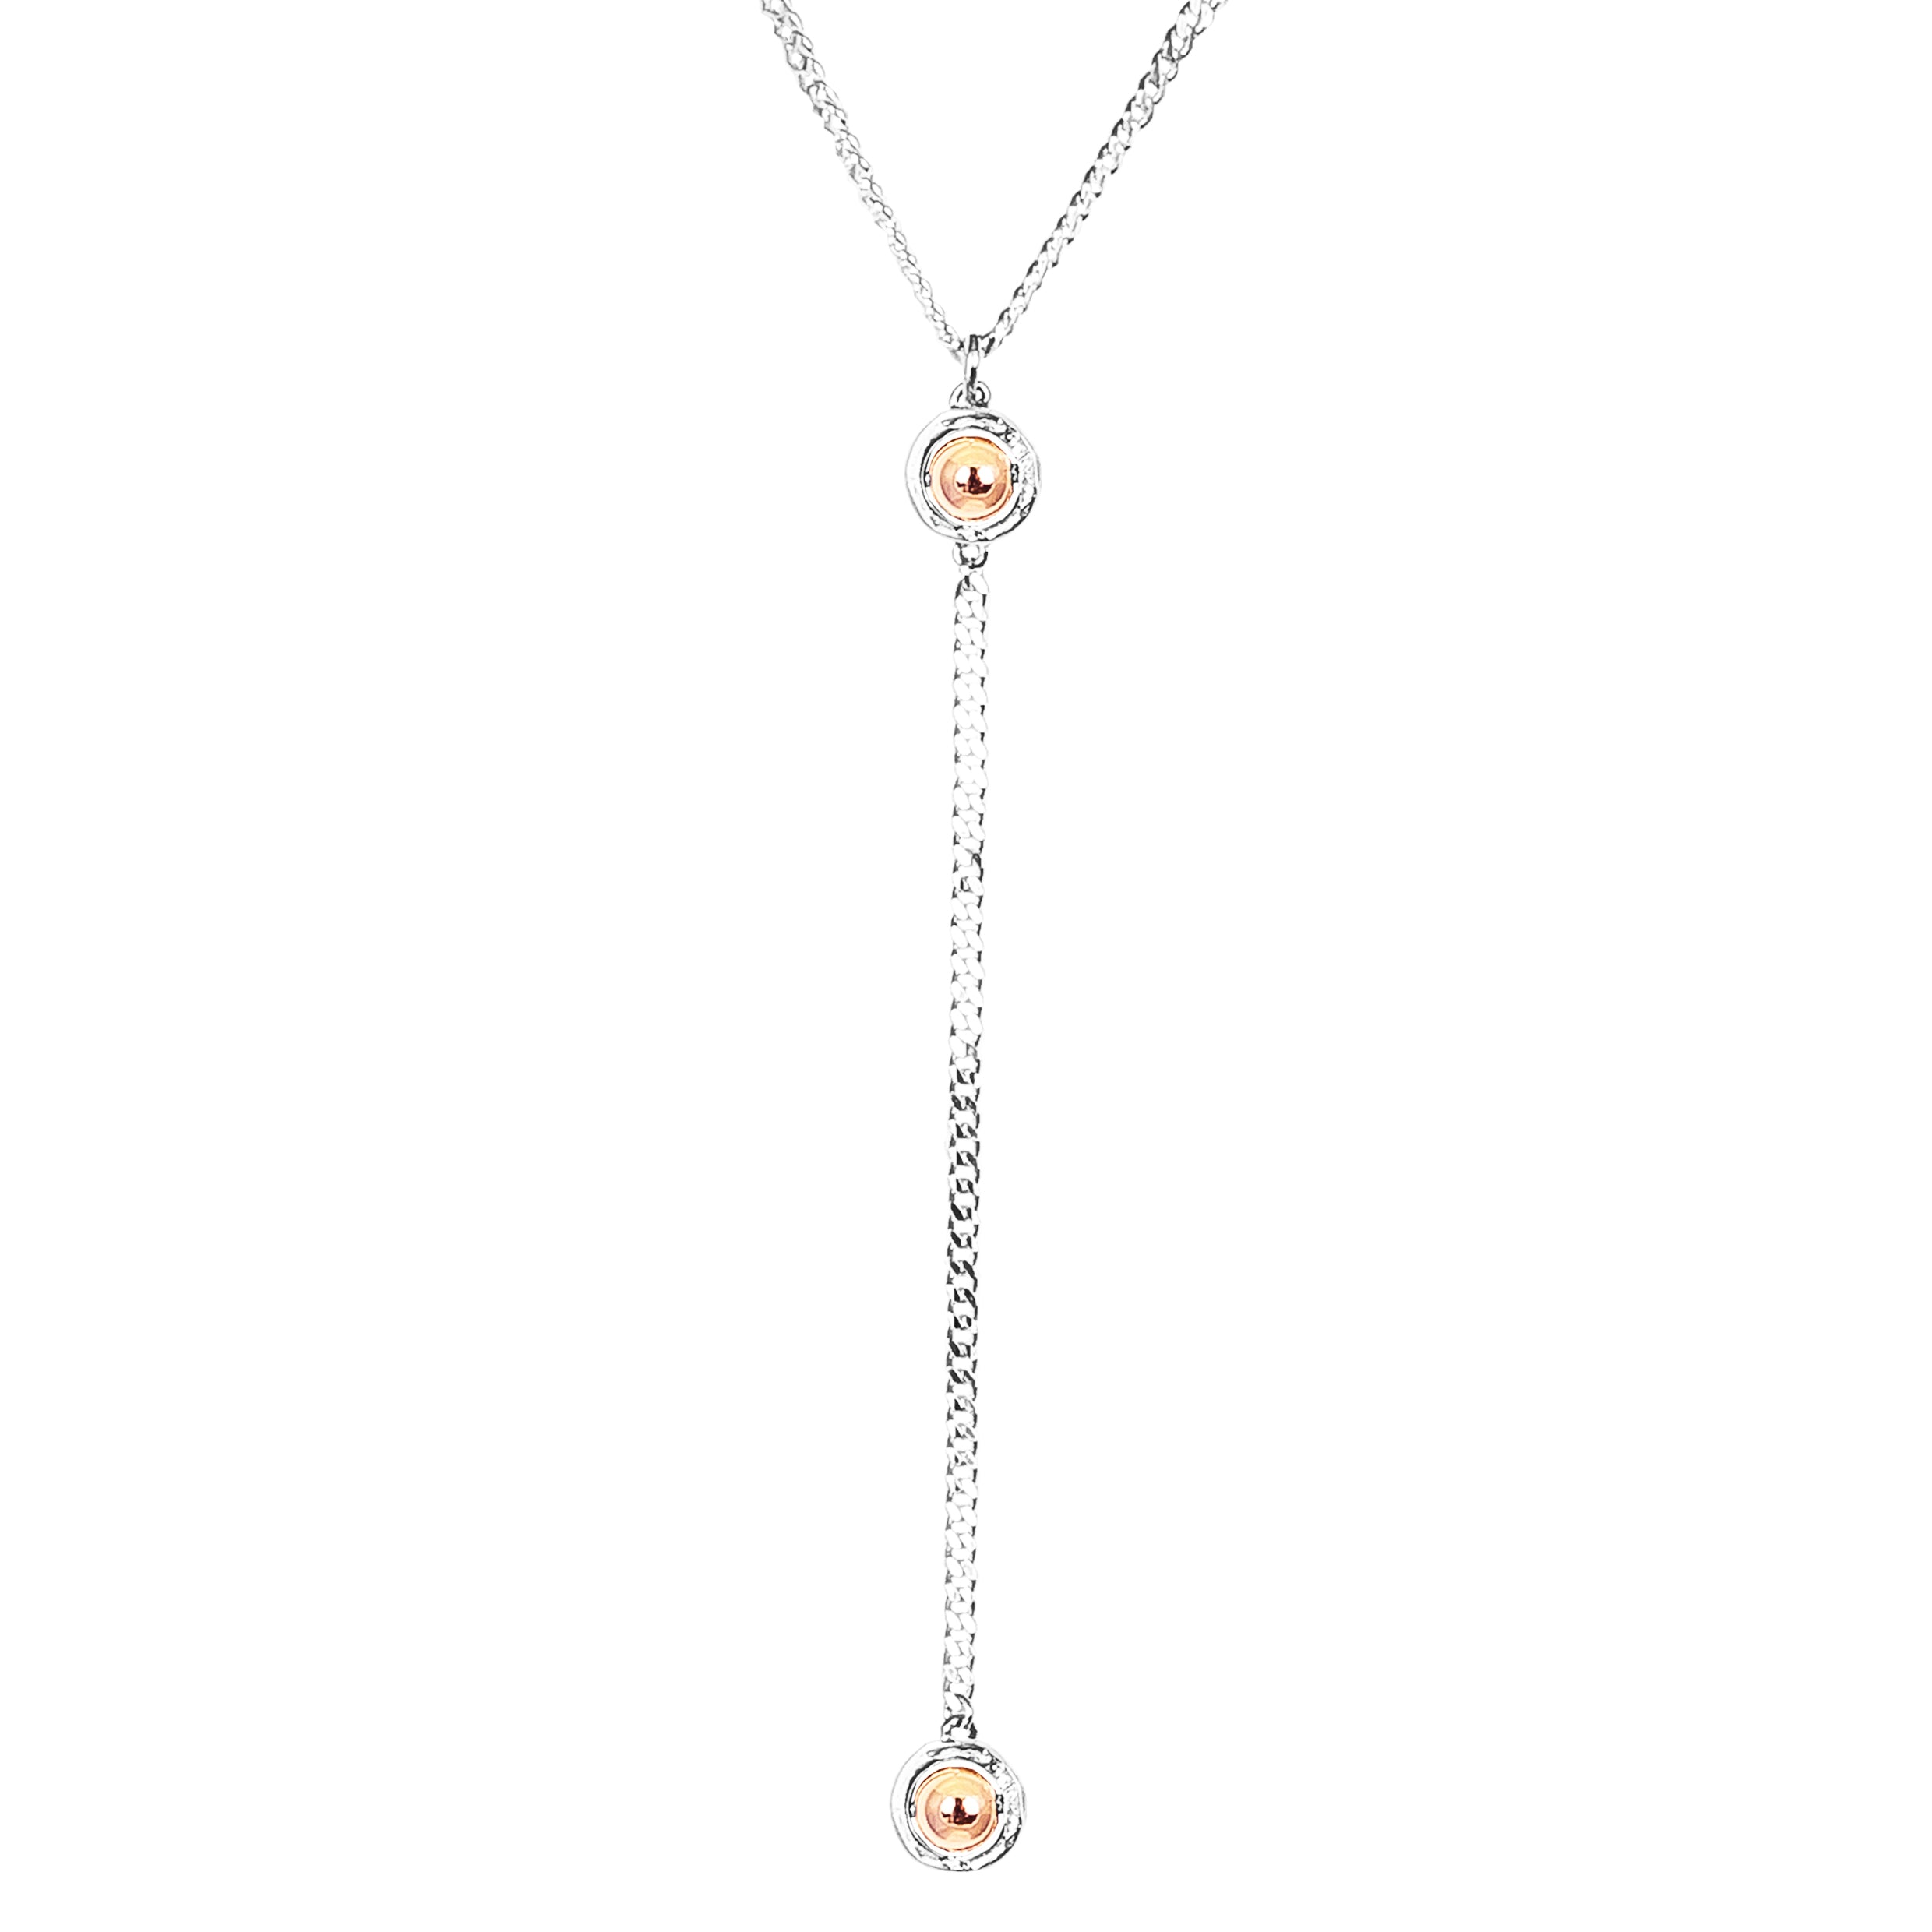 Atticus Medium Double Feature Lariet Necklace - Mid | Polished Rose Detail